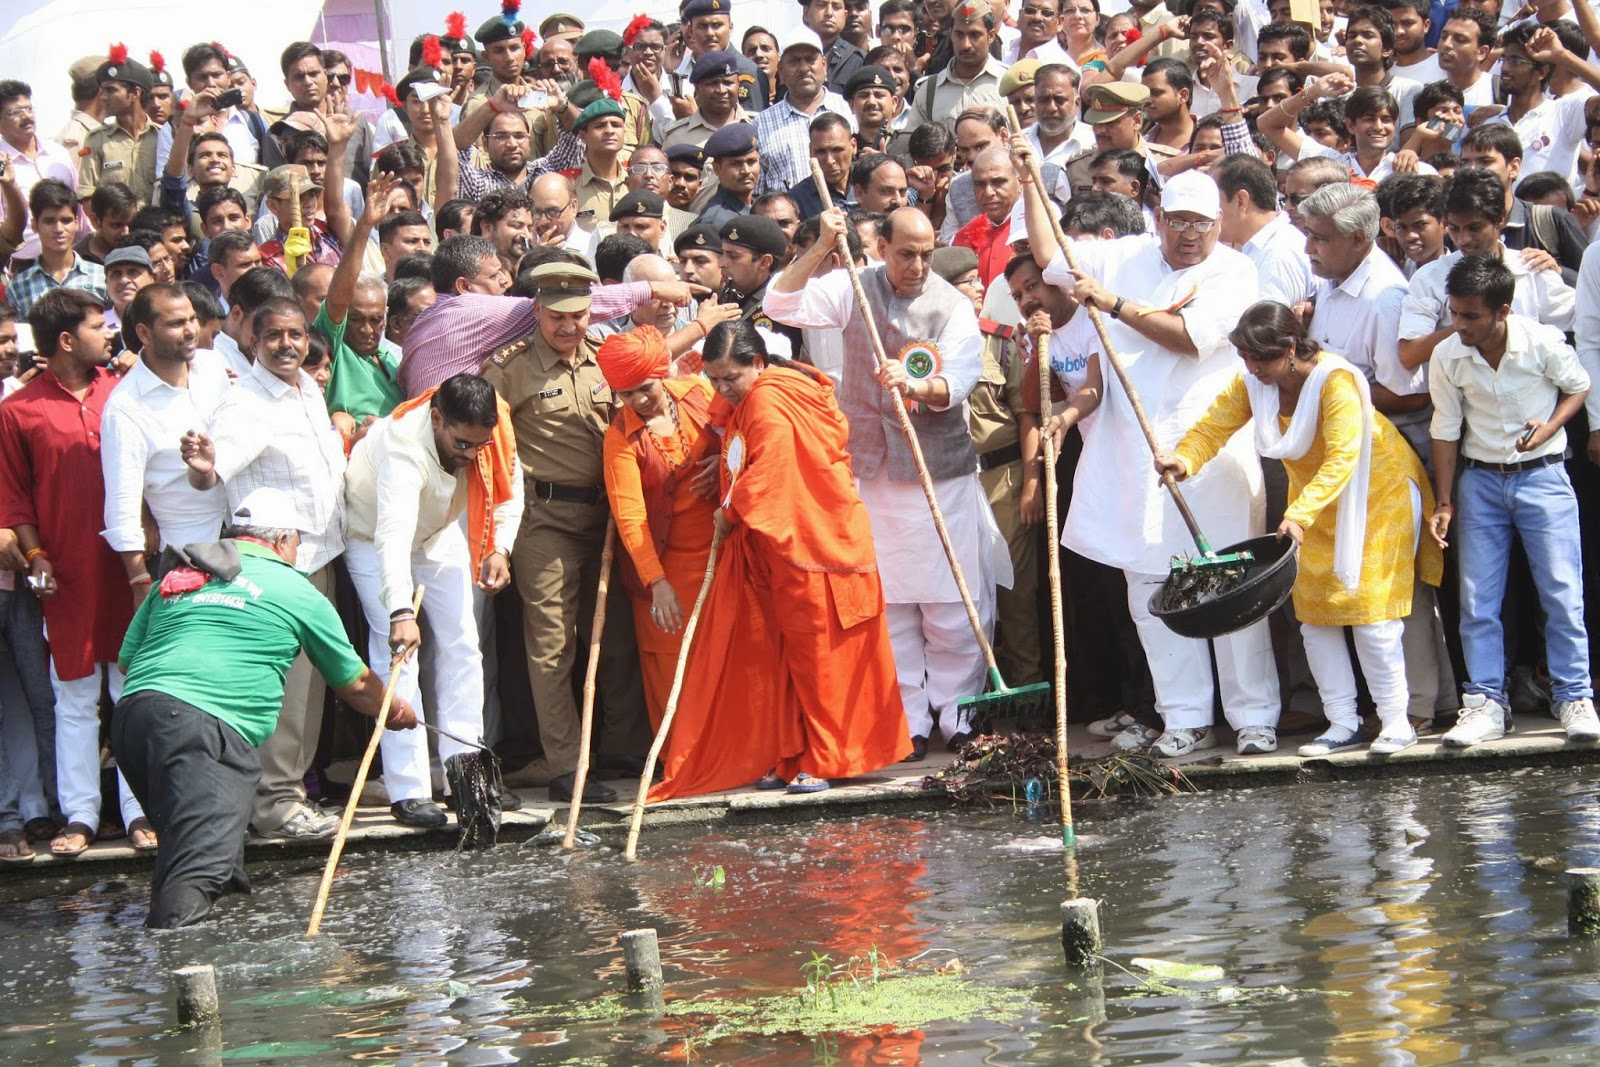 What actually is Swachh Bharat Abhiyan of Modi - Clean